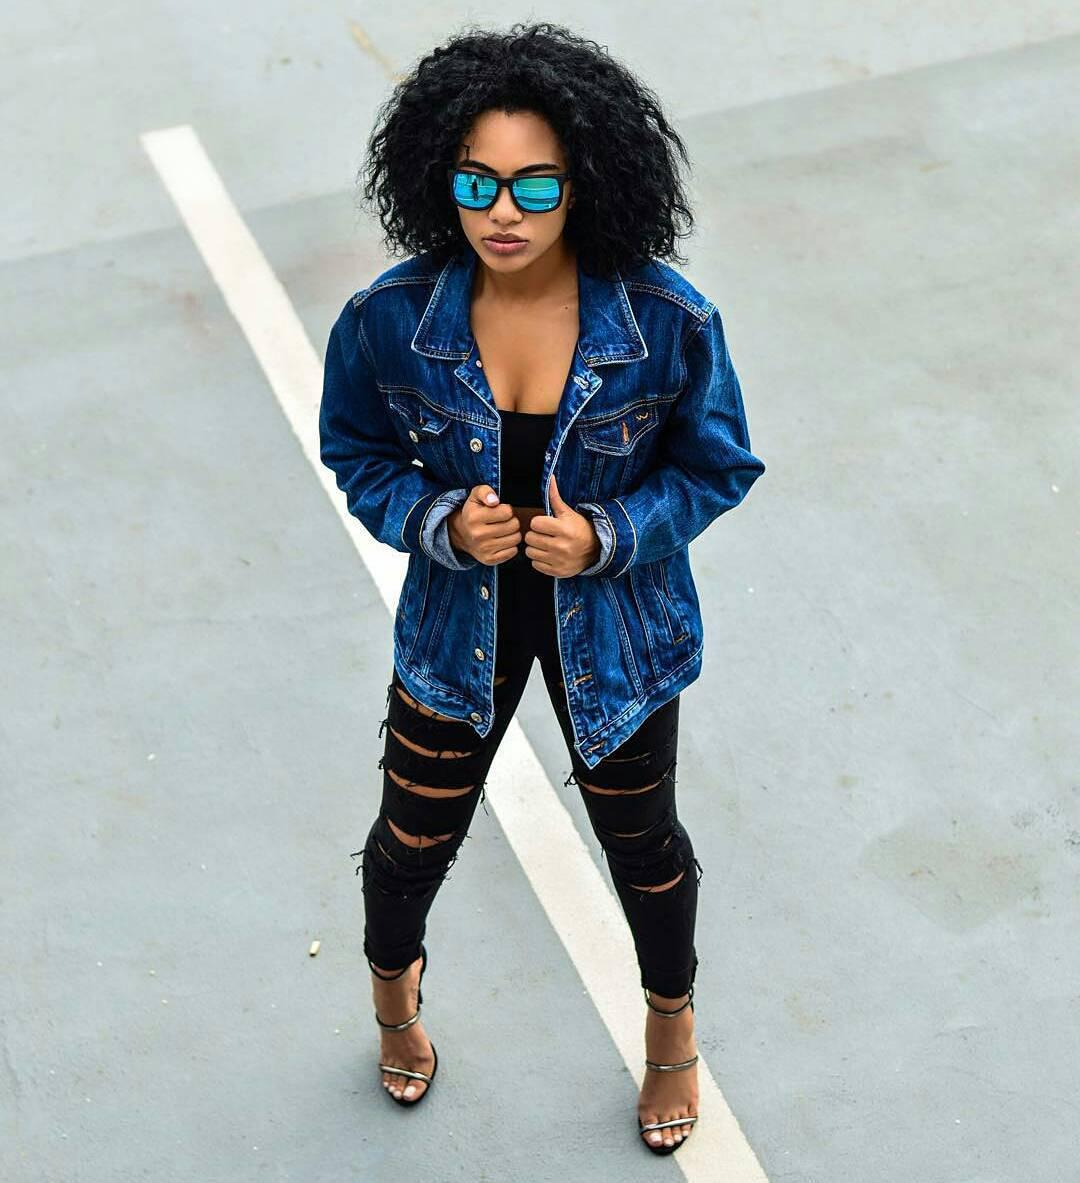 Black Girl Swag Outfits: Cool Denim Swag Outfit That Looks Cool On Any Black Girl